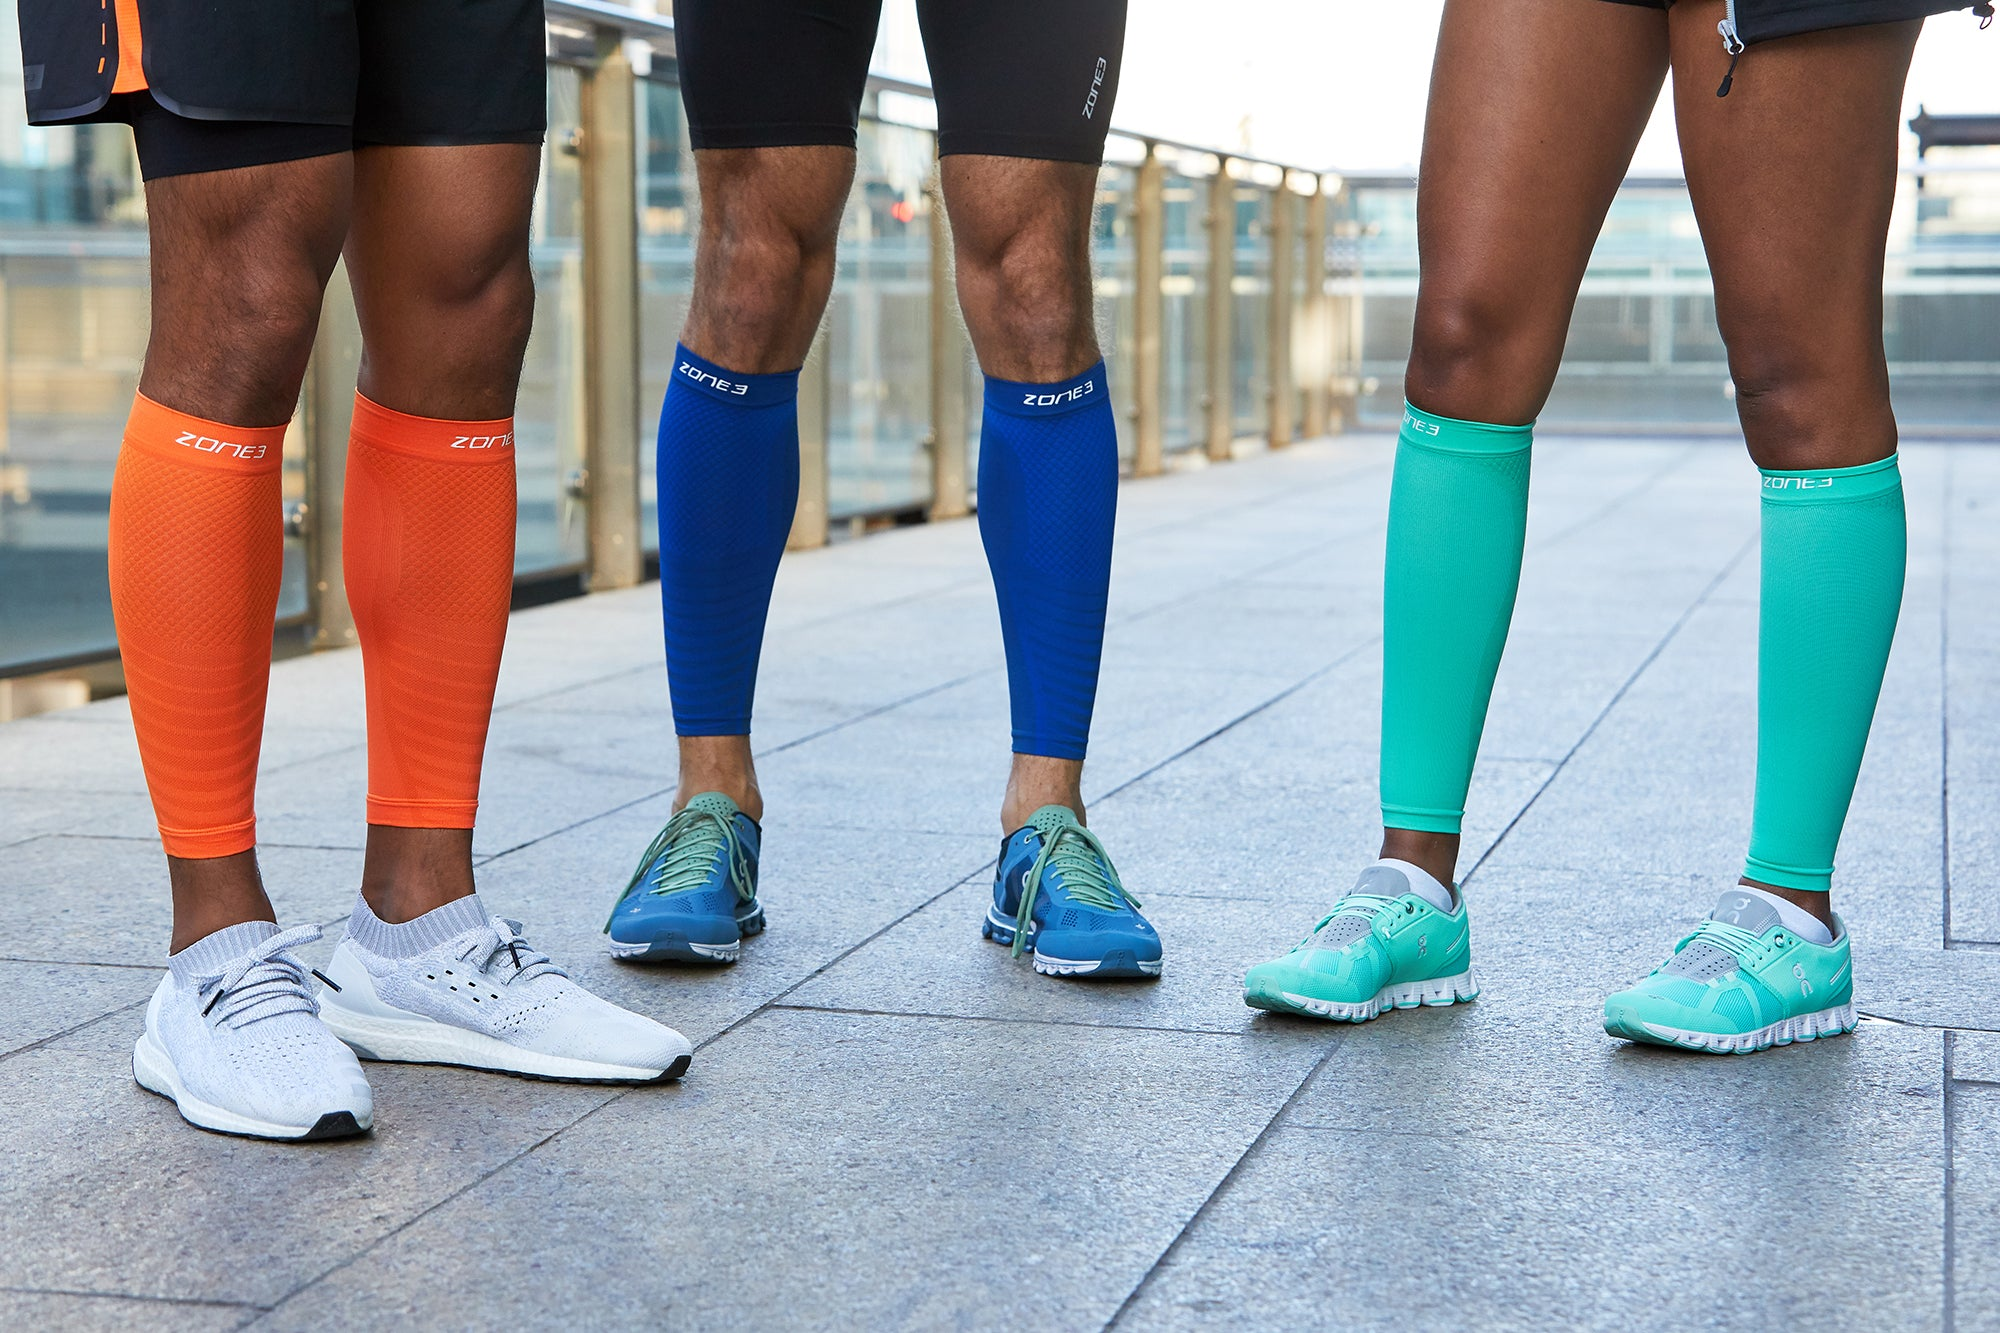 The Benefits of Wearing Compression Calf Sleeves